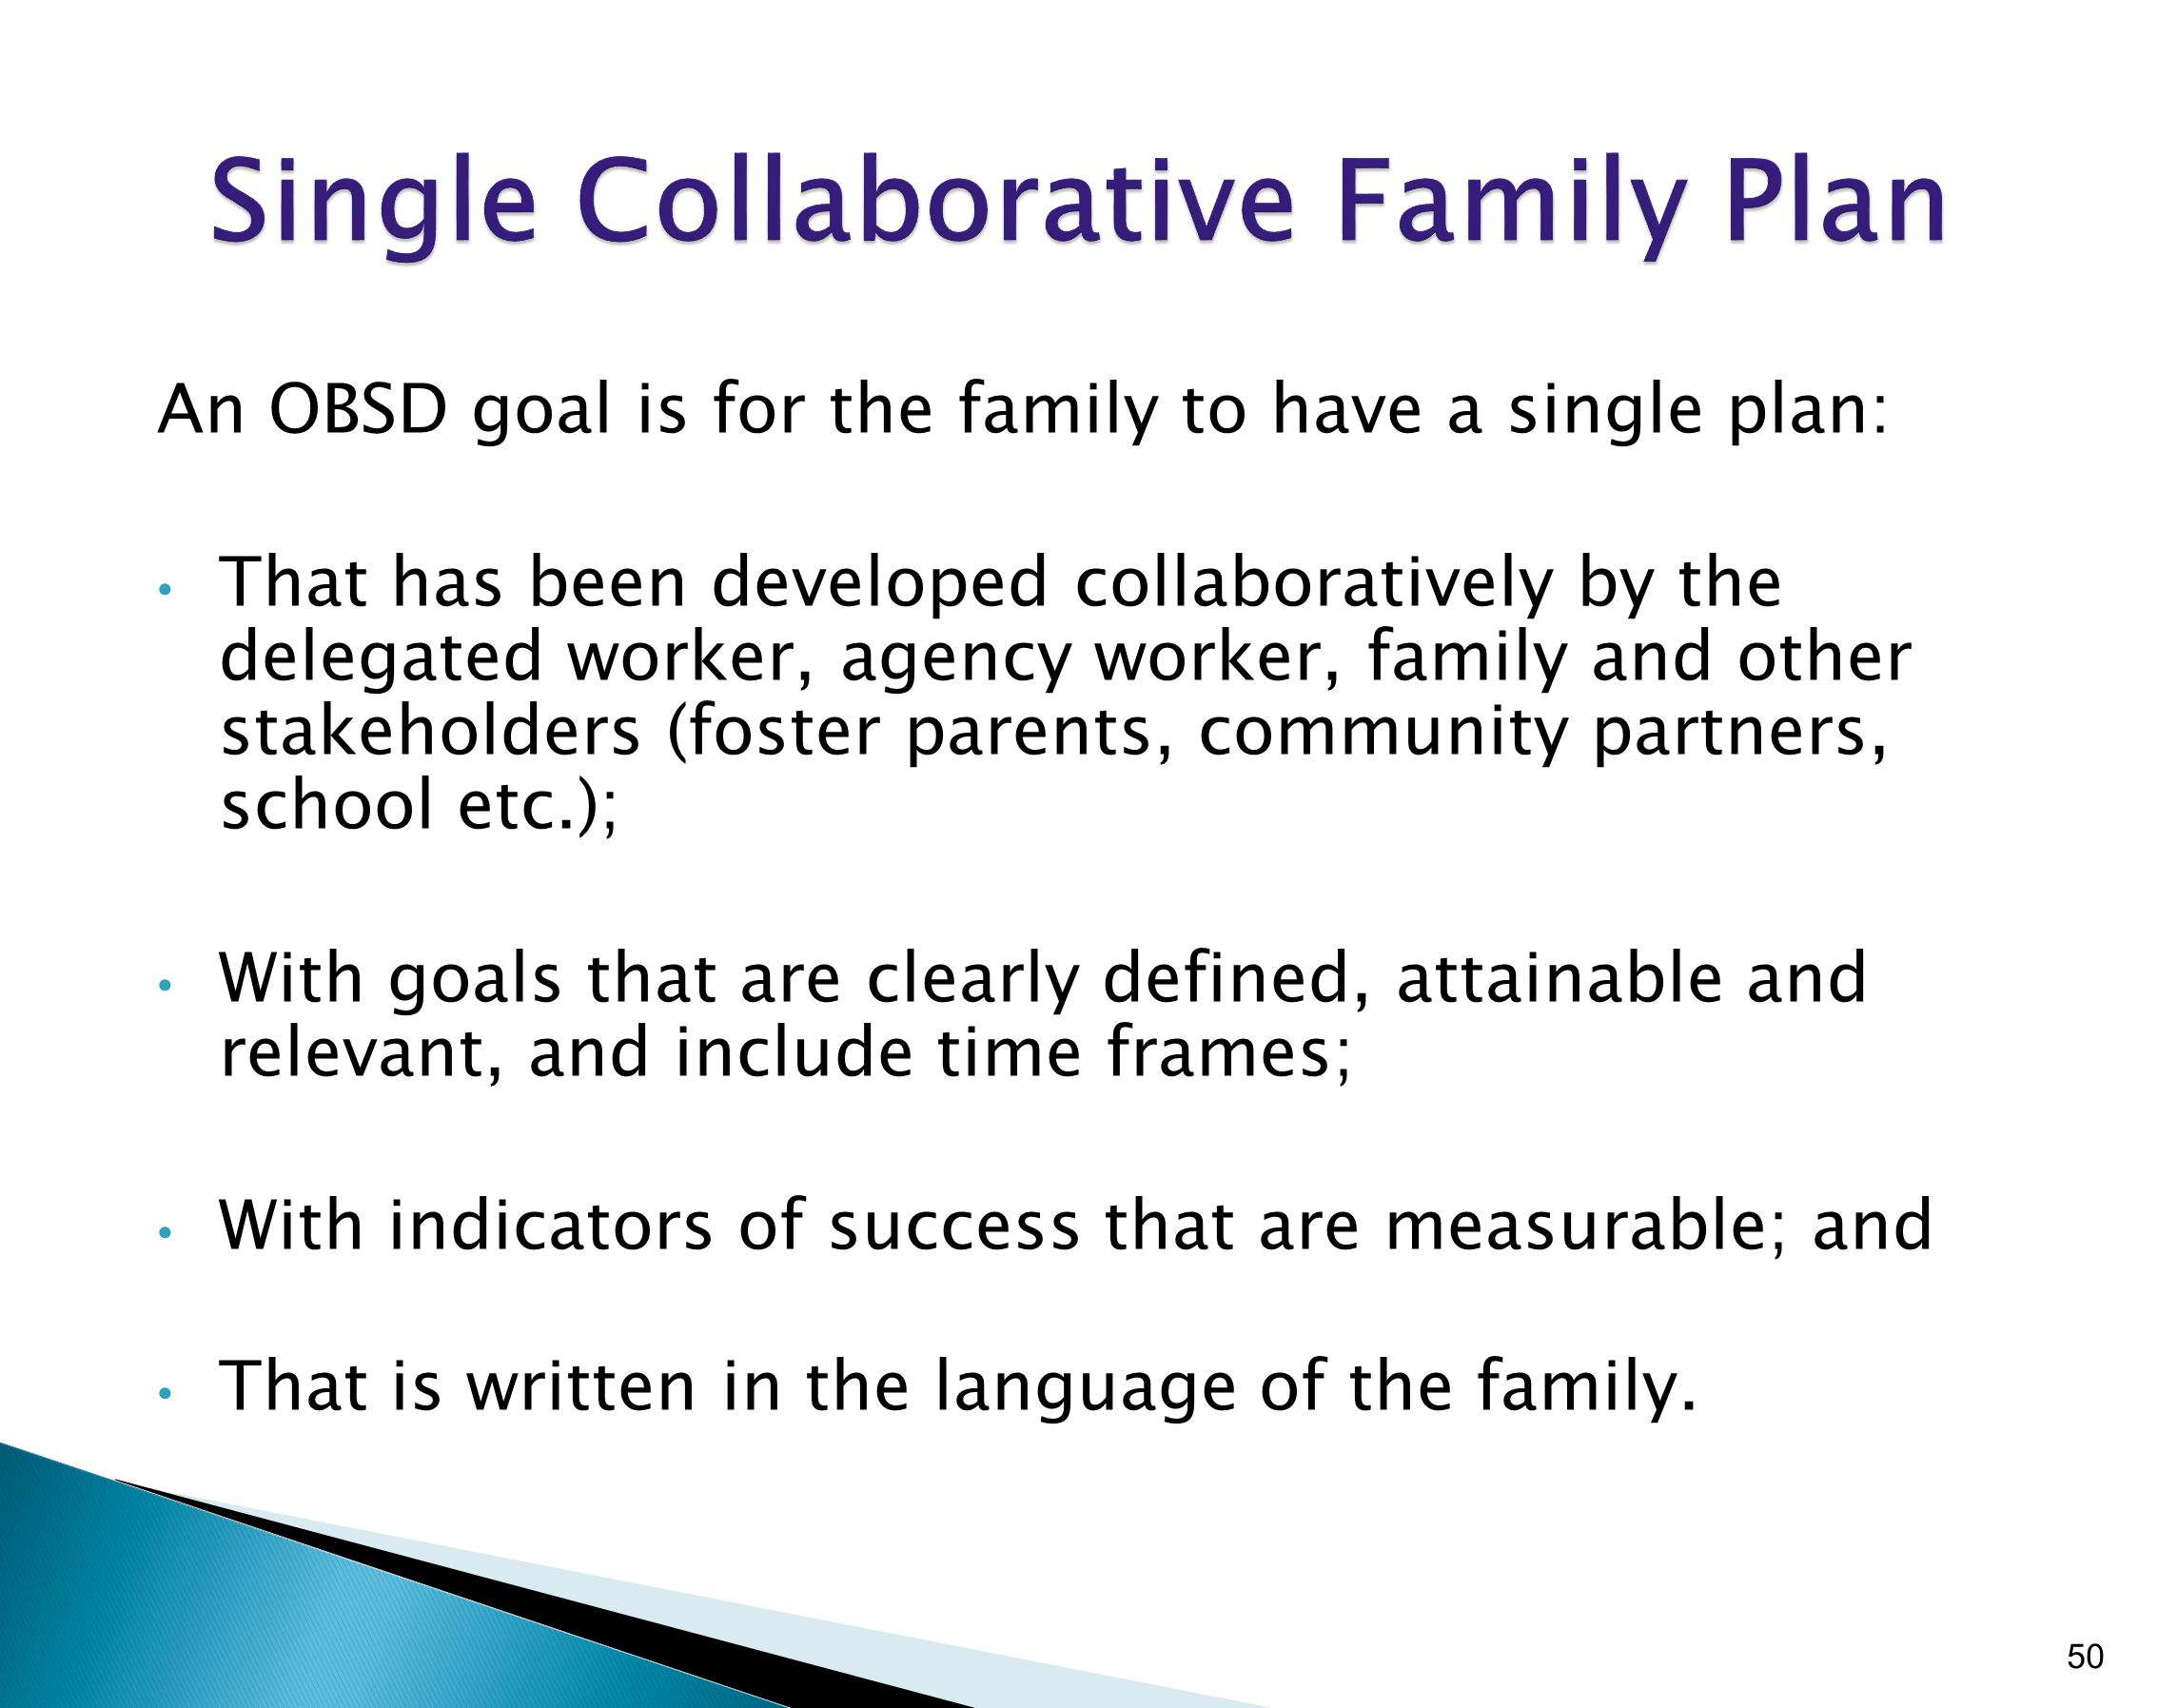 An OBSD goal is for the family to have a single plan: That has been developed collaboratively by the delegated worker, agency worker, family and other